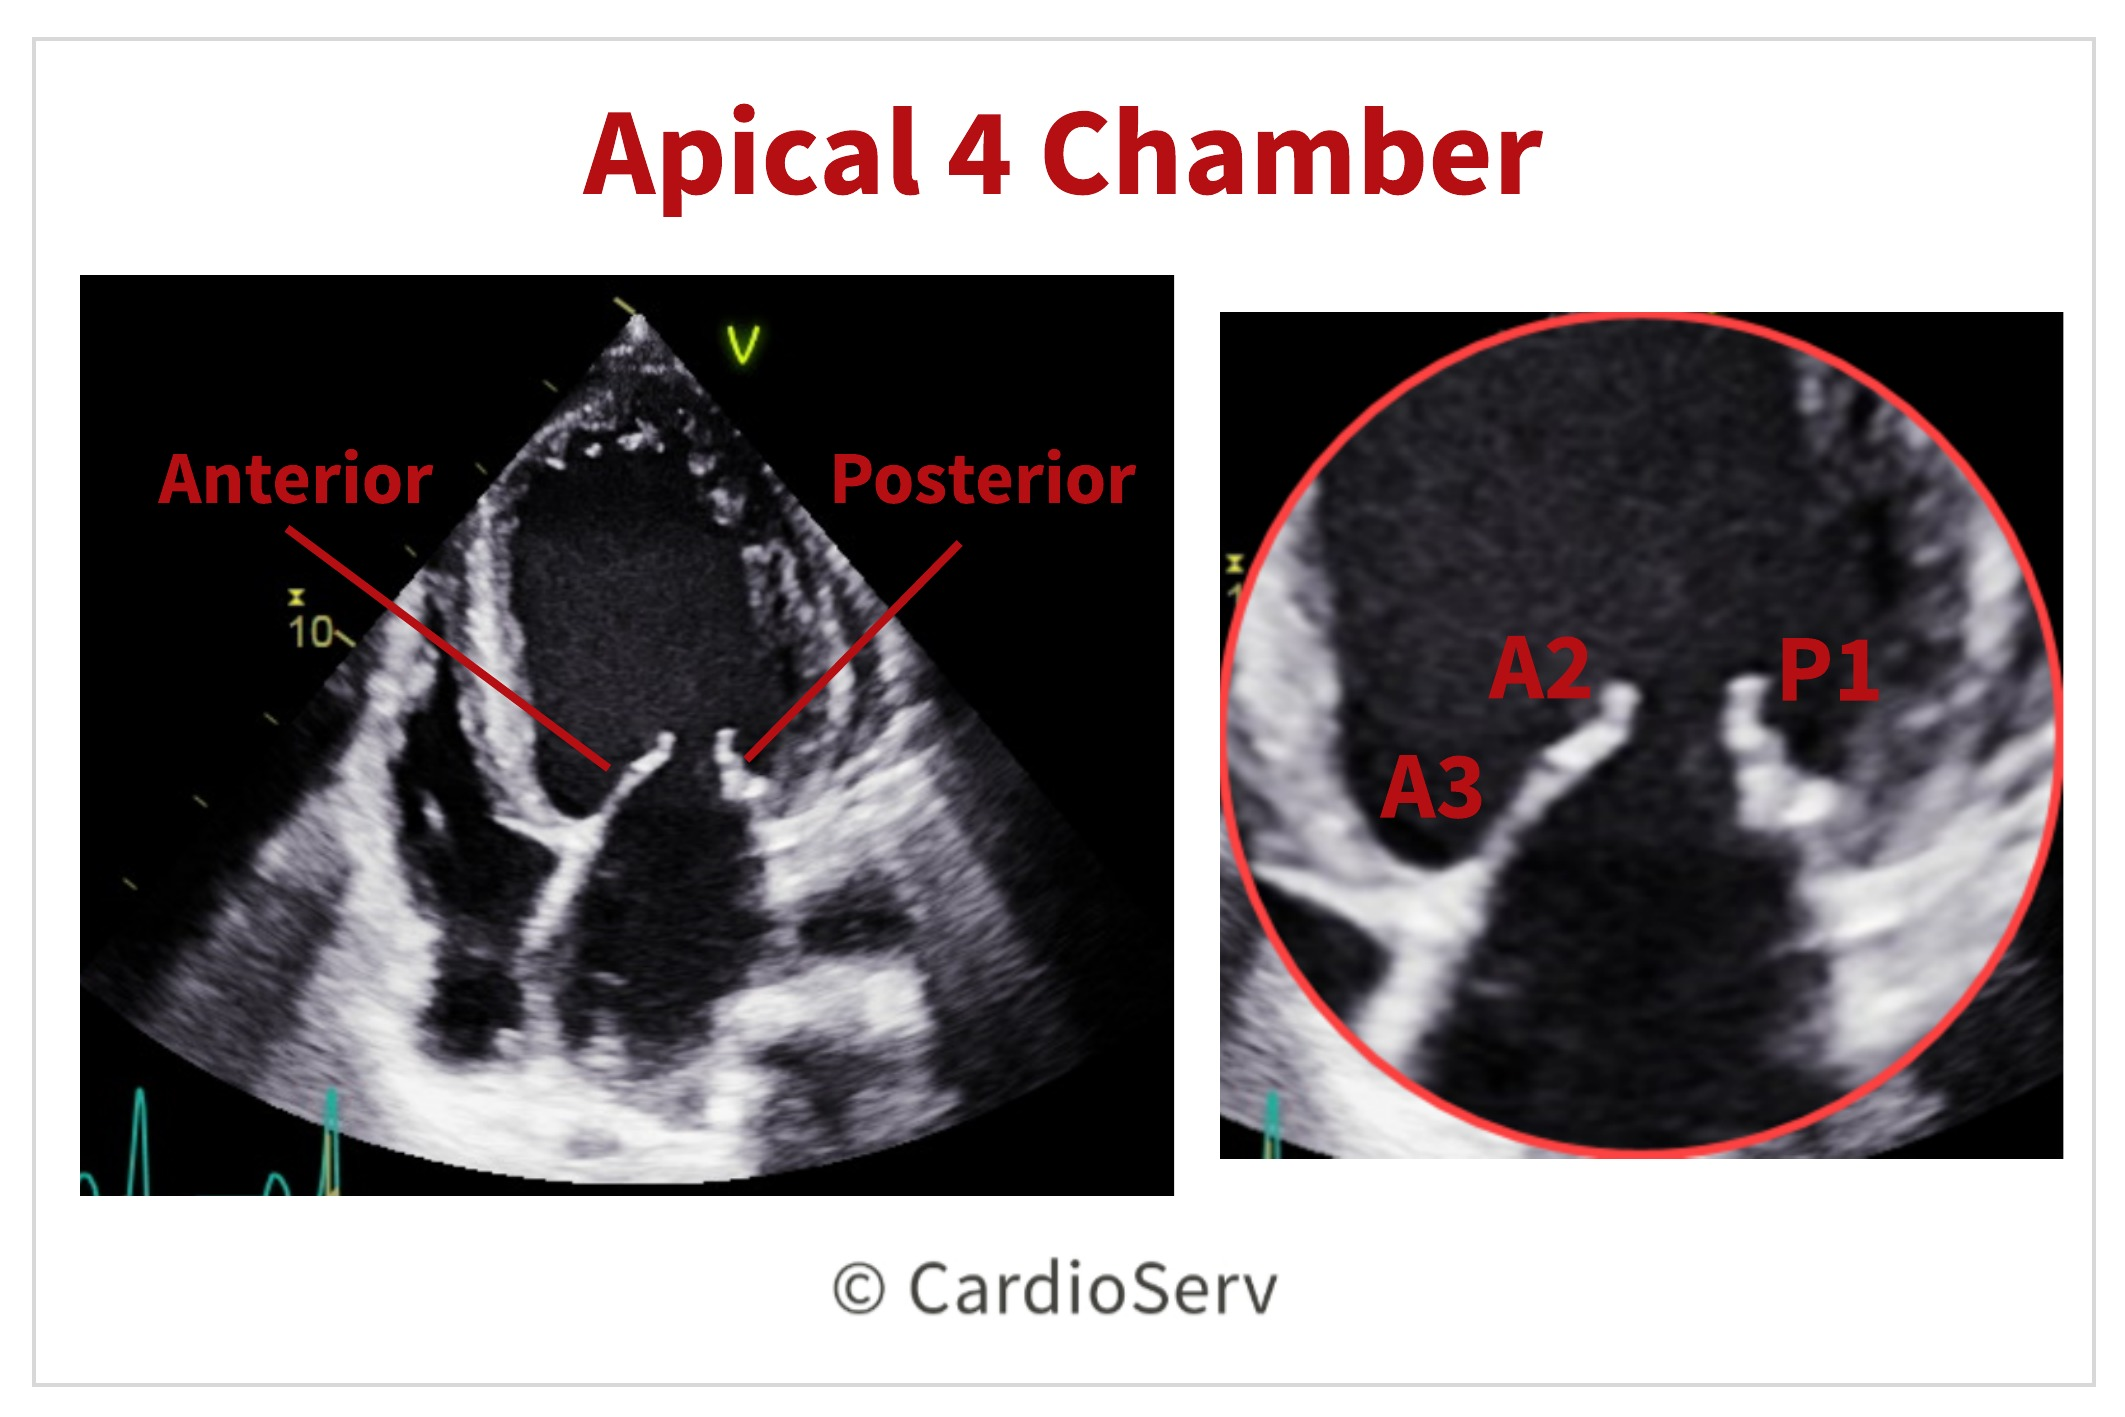 Apical 4 Chamber AP4 Mitral Valve Scallops Echo